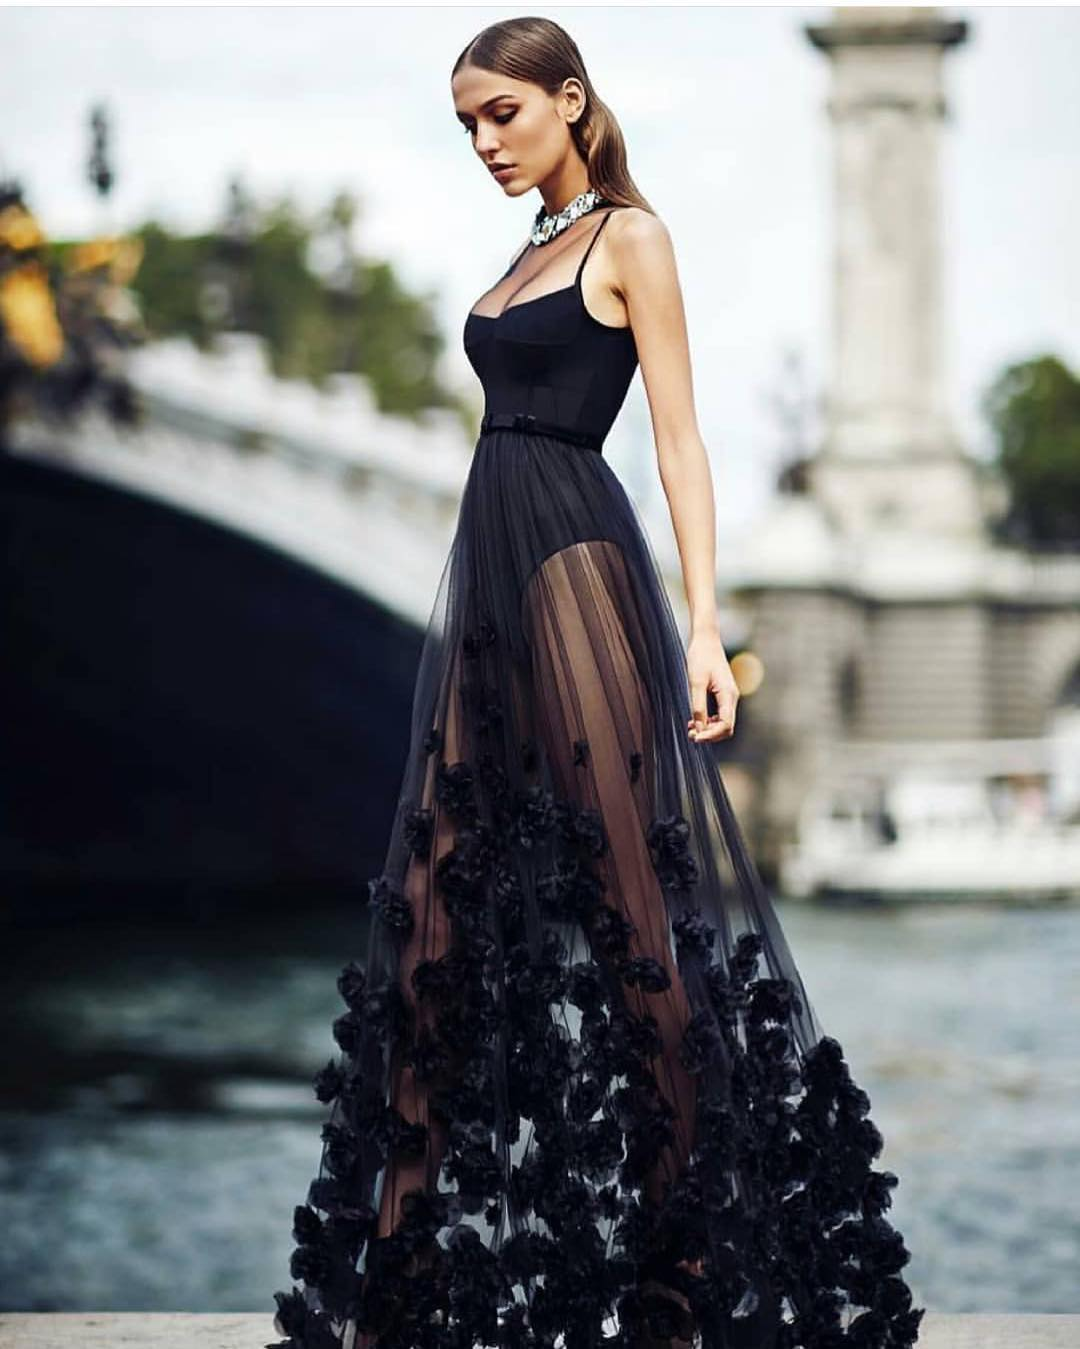 Black Bodysuit With Black Sheer Maxi Skirt For Special Evening Parties 2020